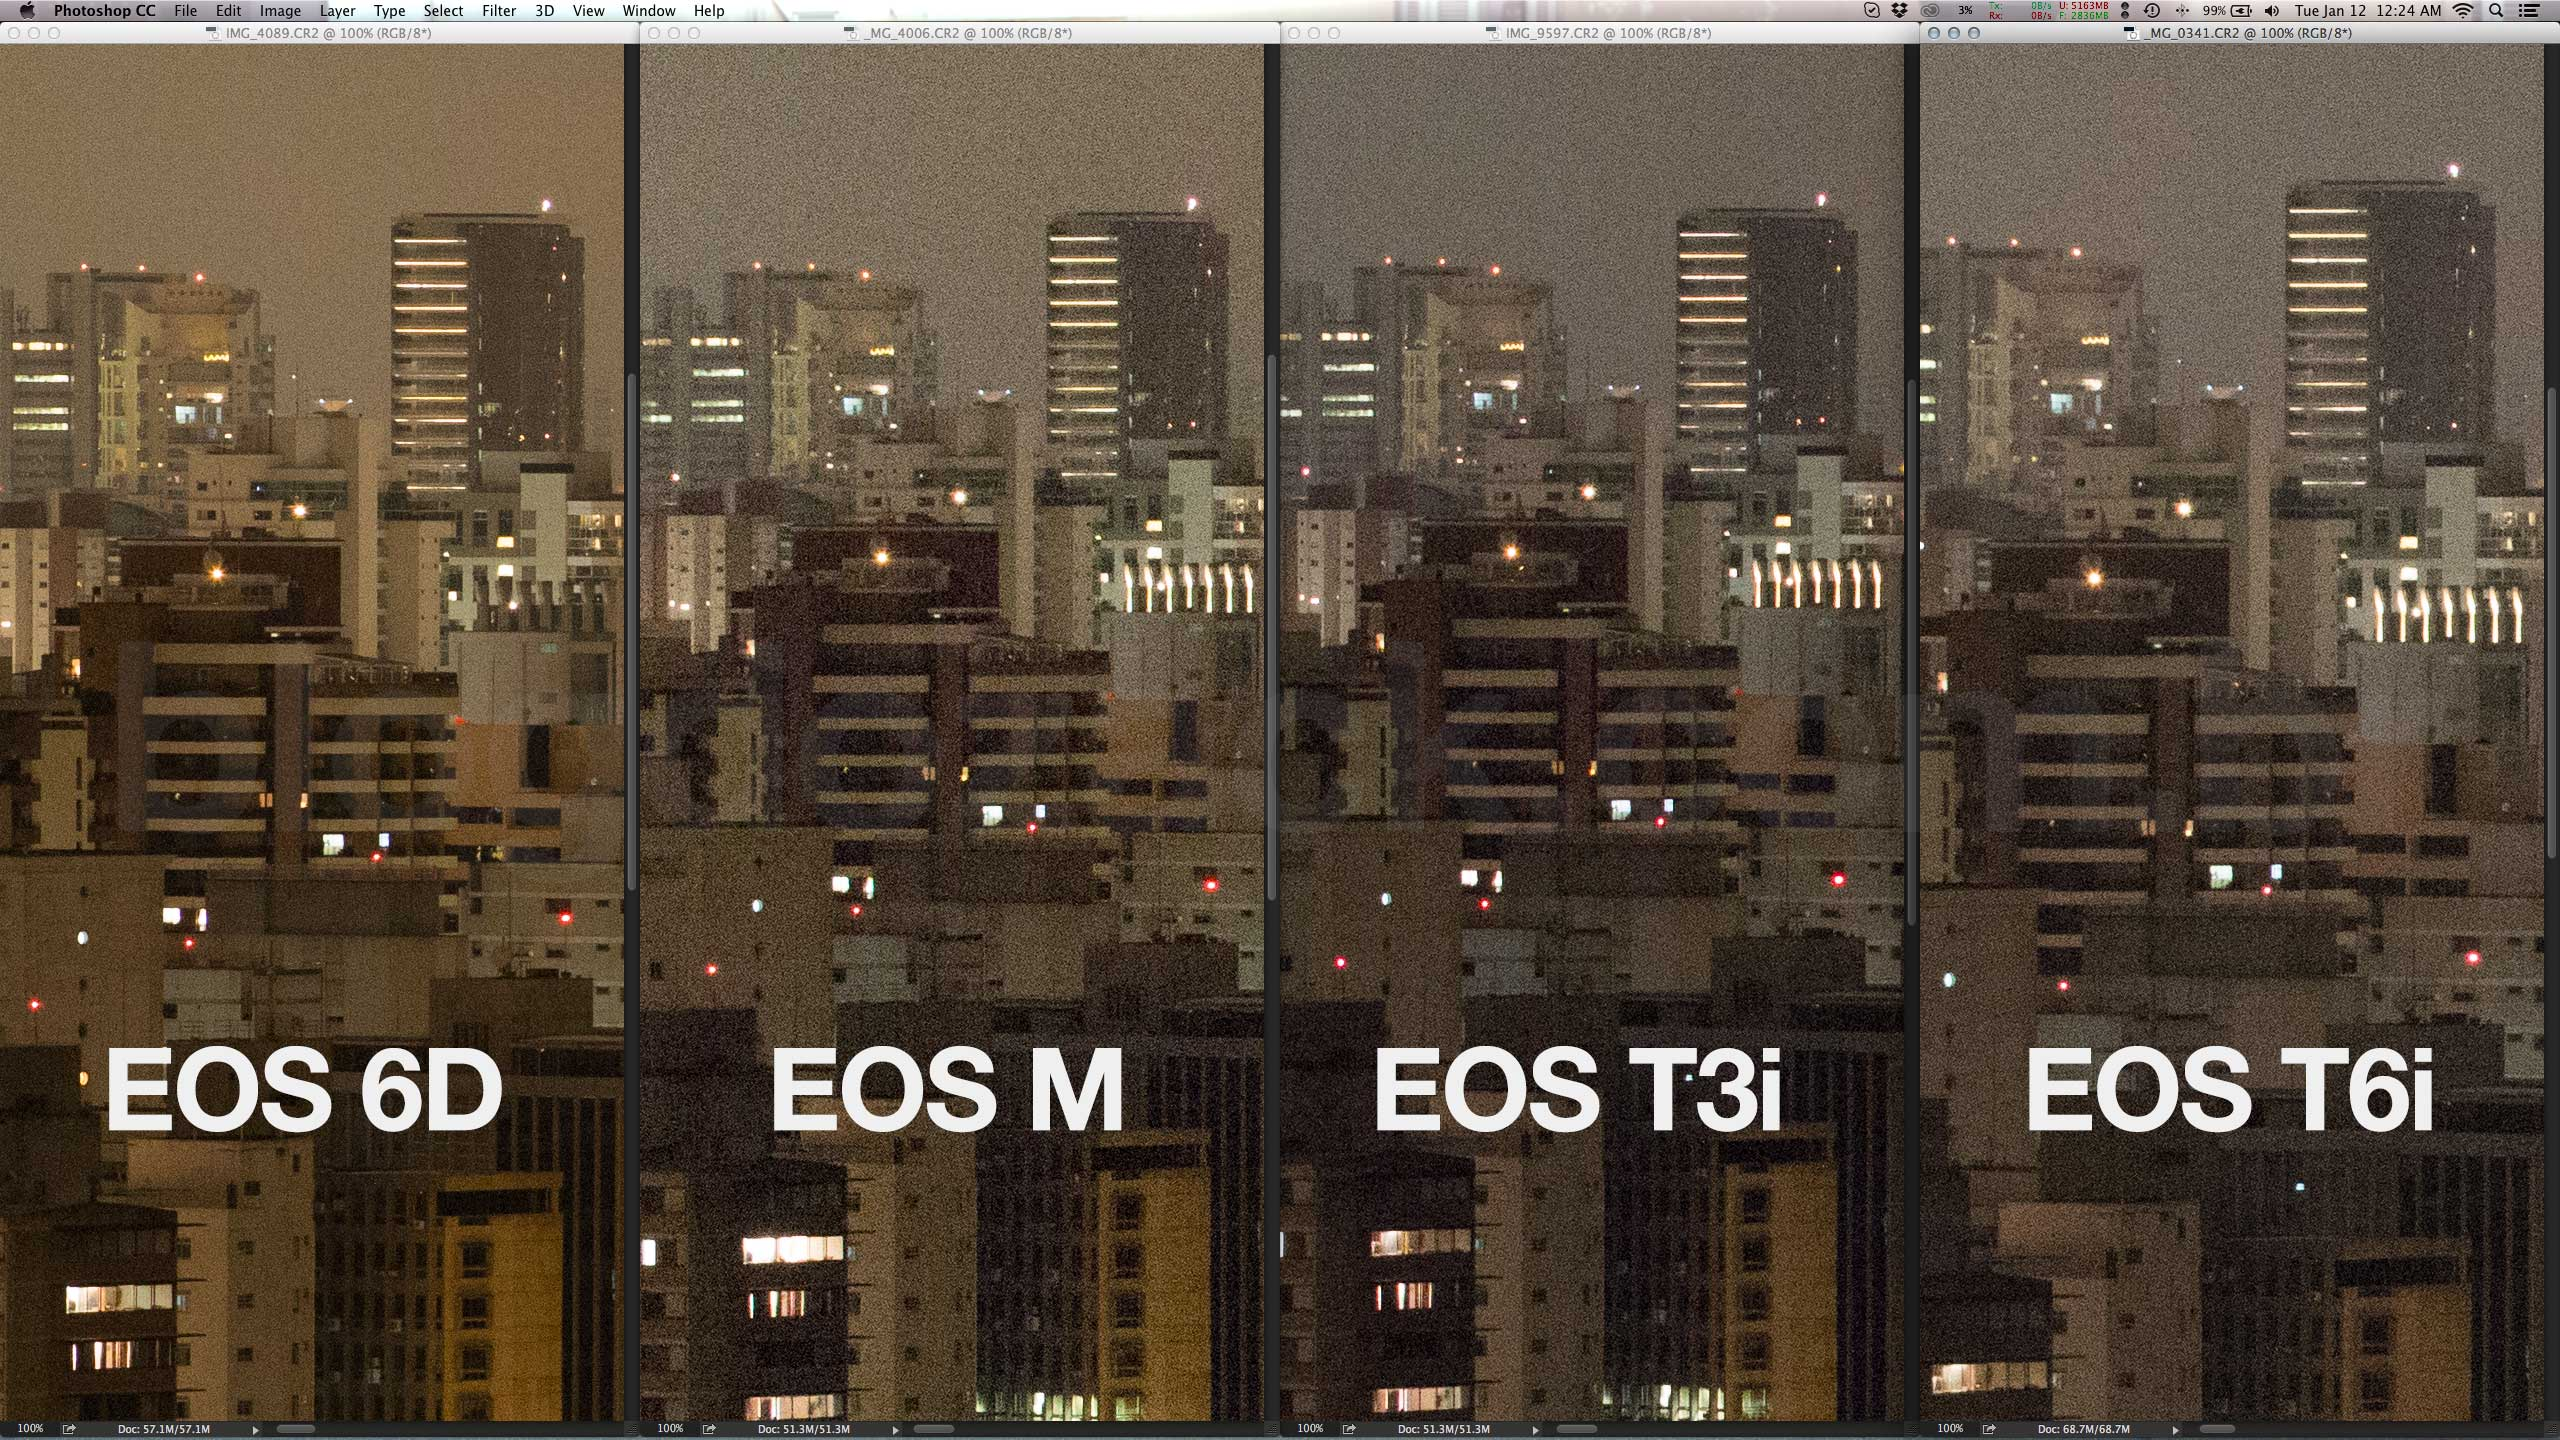 At ISO6400, the T6i is barely an improvement over the previous cameras. Files are as noisy but the details are there, just a little bigger due to the extra pixels. The full frame camera all the way to the left is vastly superior.